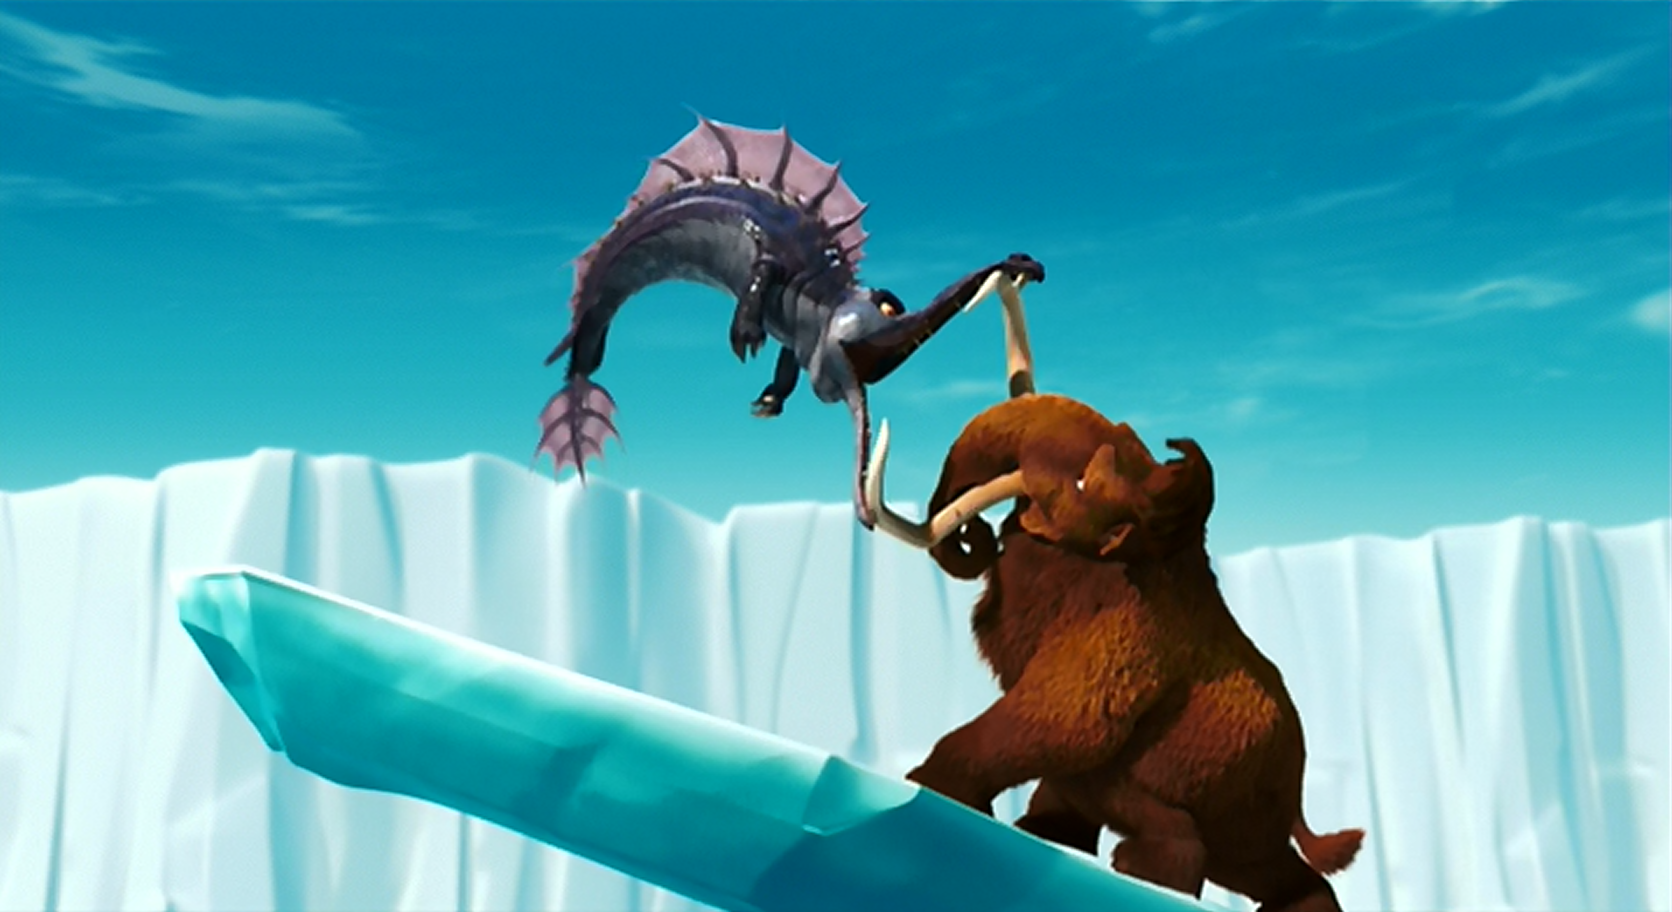 HQ Ice Age: The Meltdown Wallpapers | File 1185.92Kb